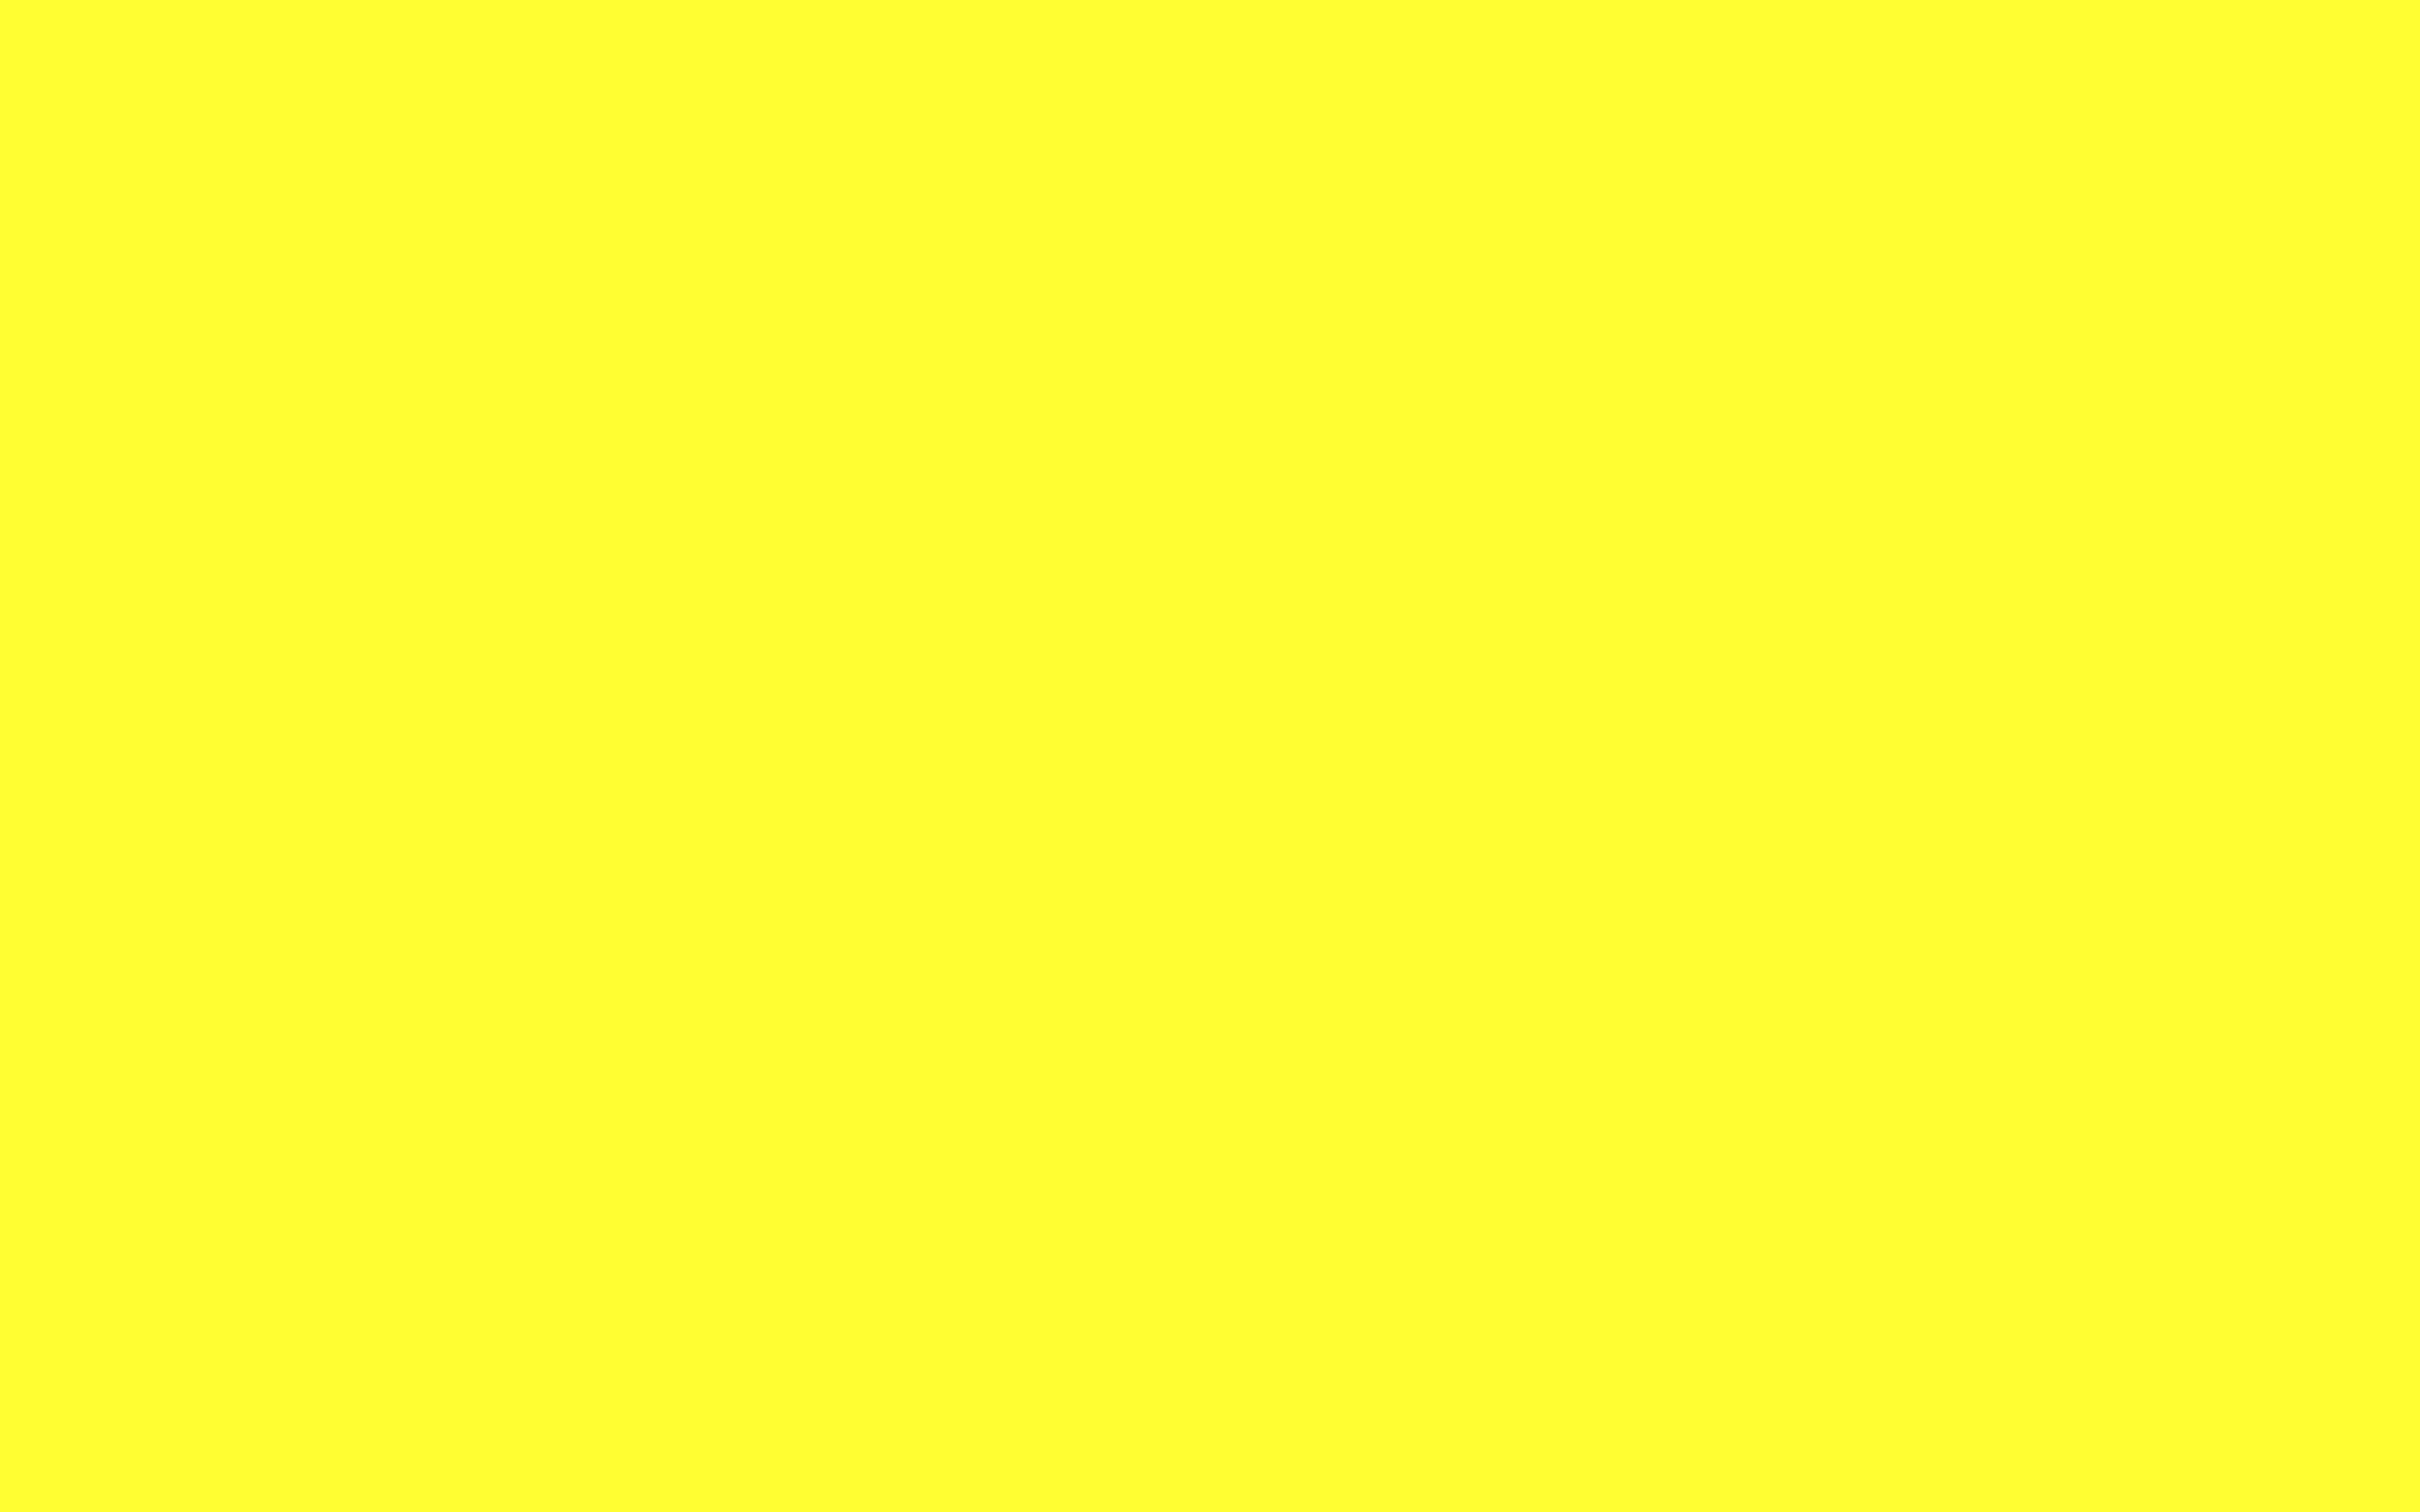 2880x1800 Yellow RYB Solid Color Background